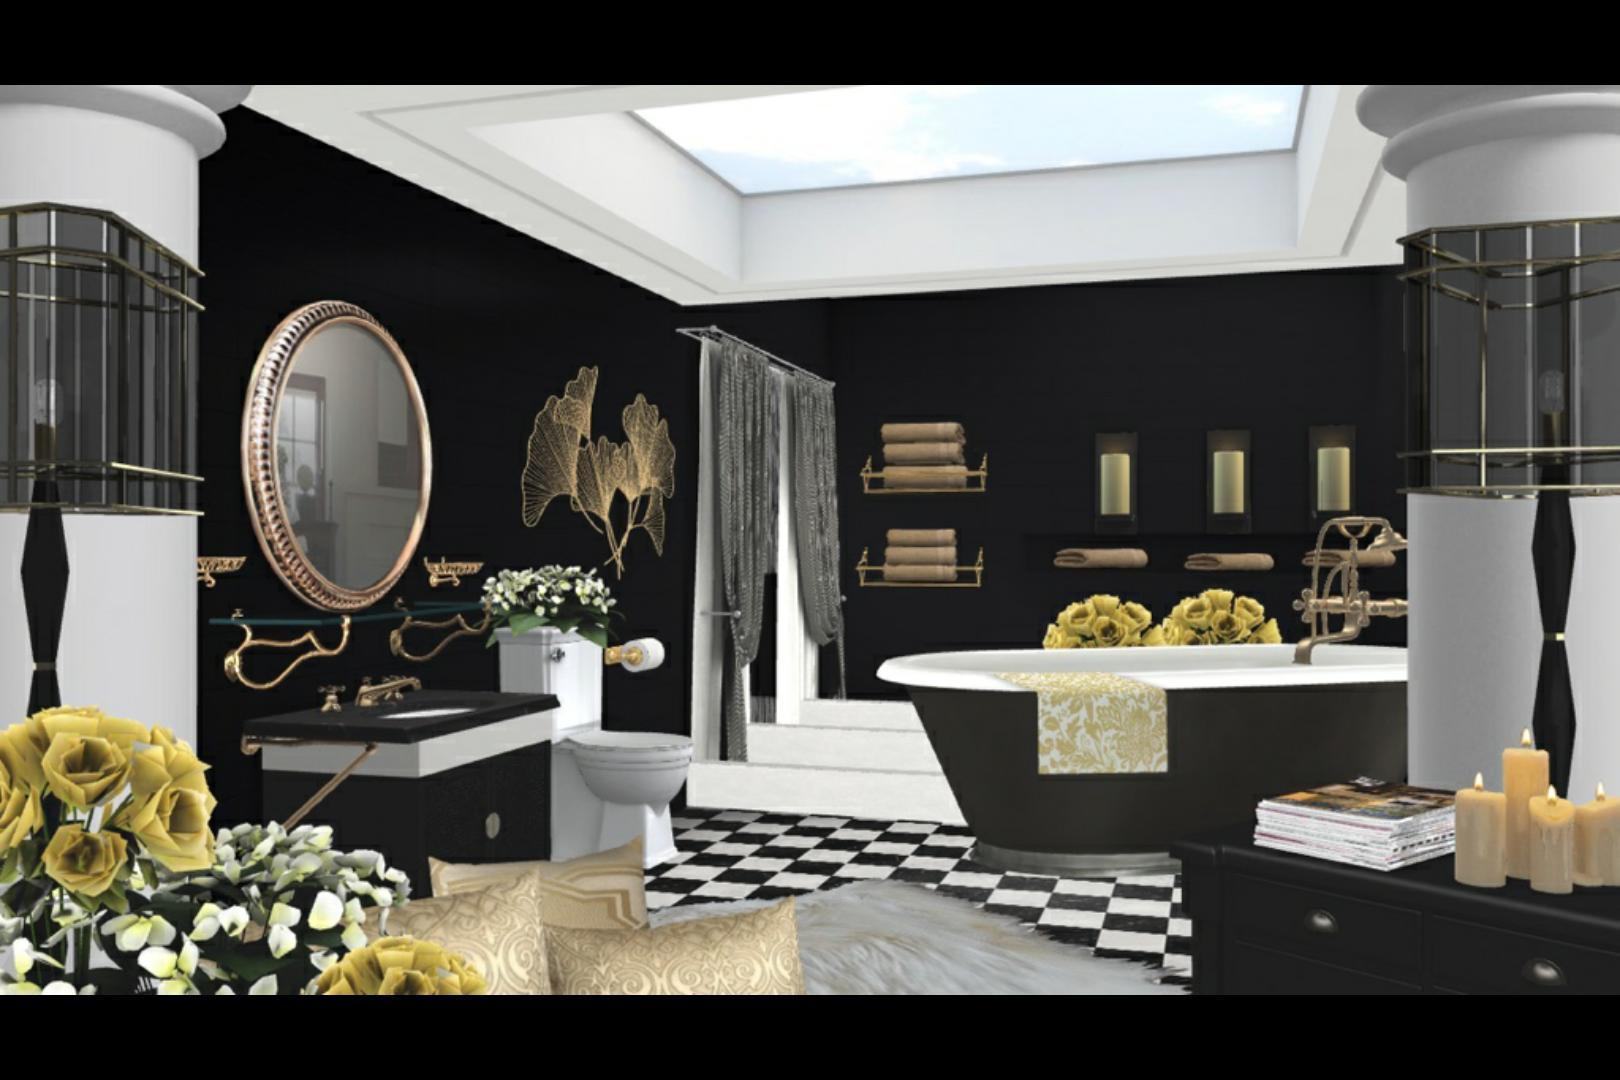 I will create HOME INTERIOR DESIGN with Realistic 3D Renders